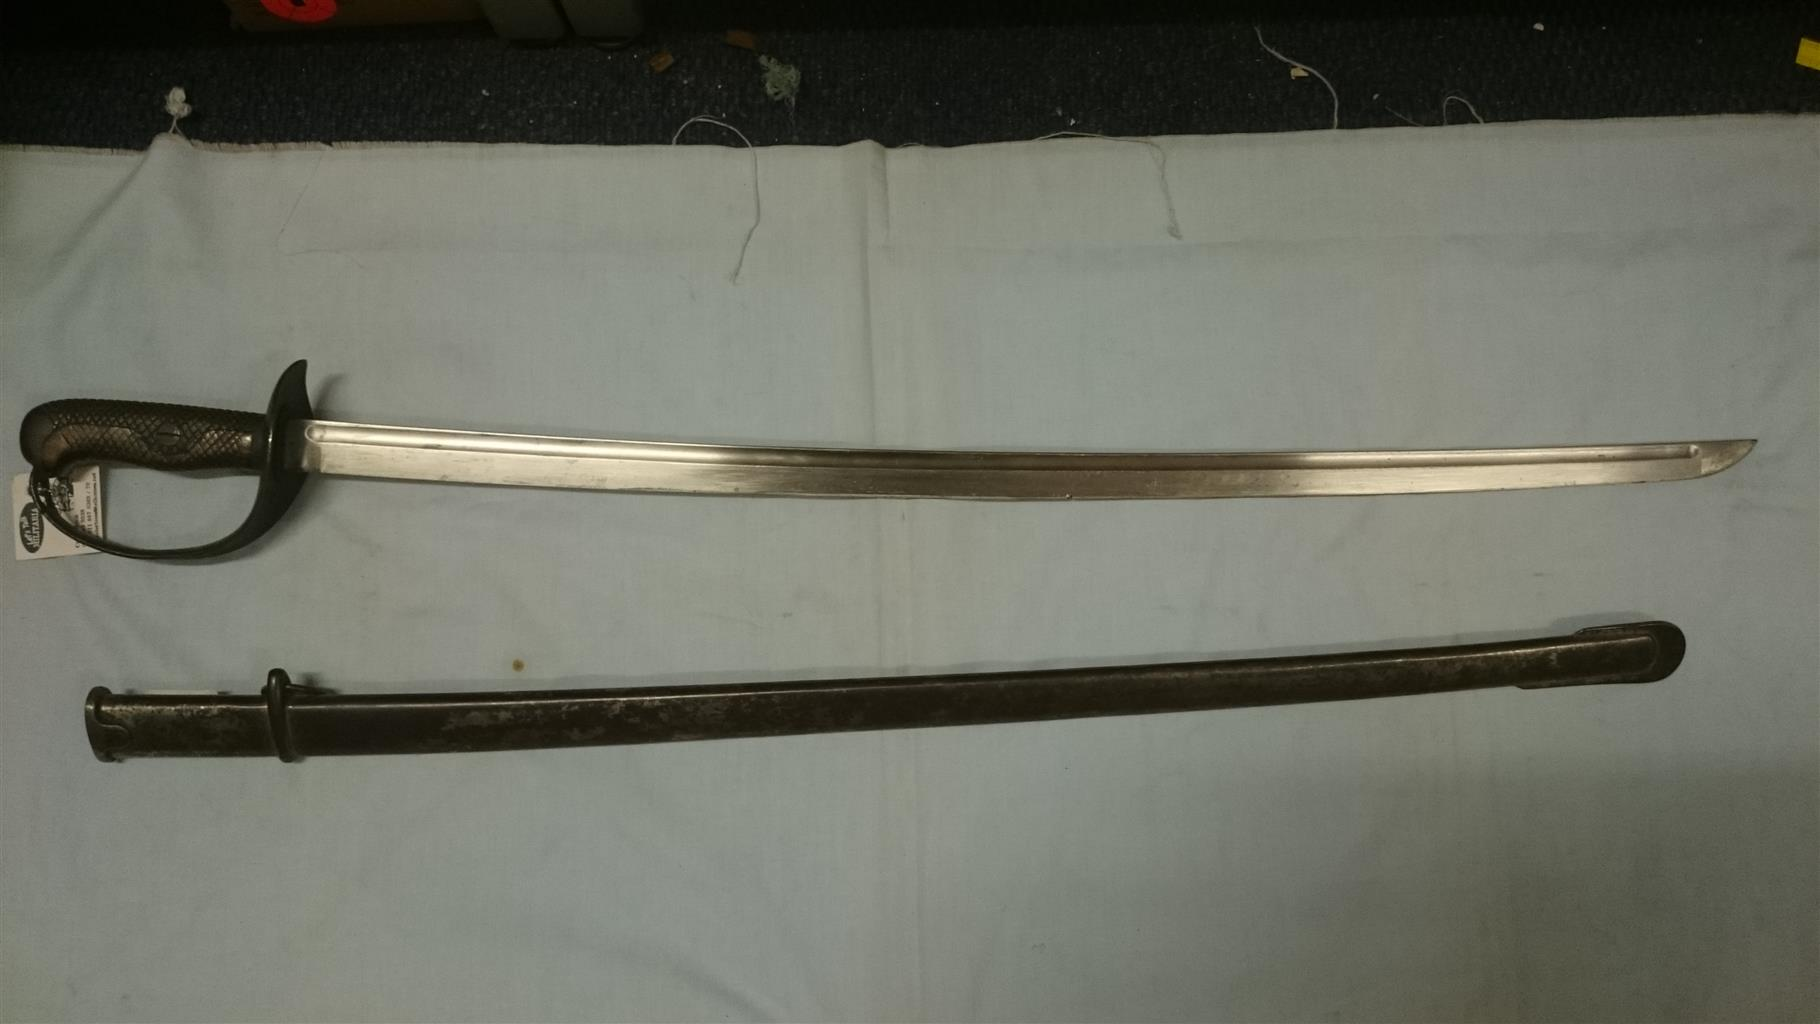 Japanese pattern 1908, cavalry sword, good original condition, super rare.